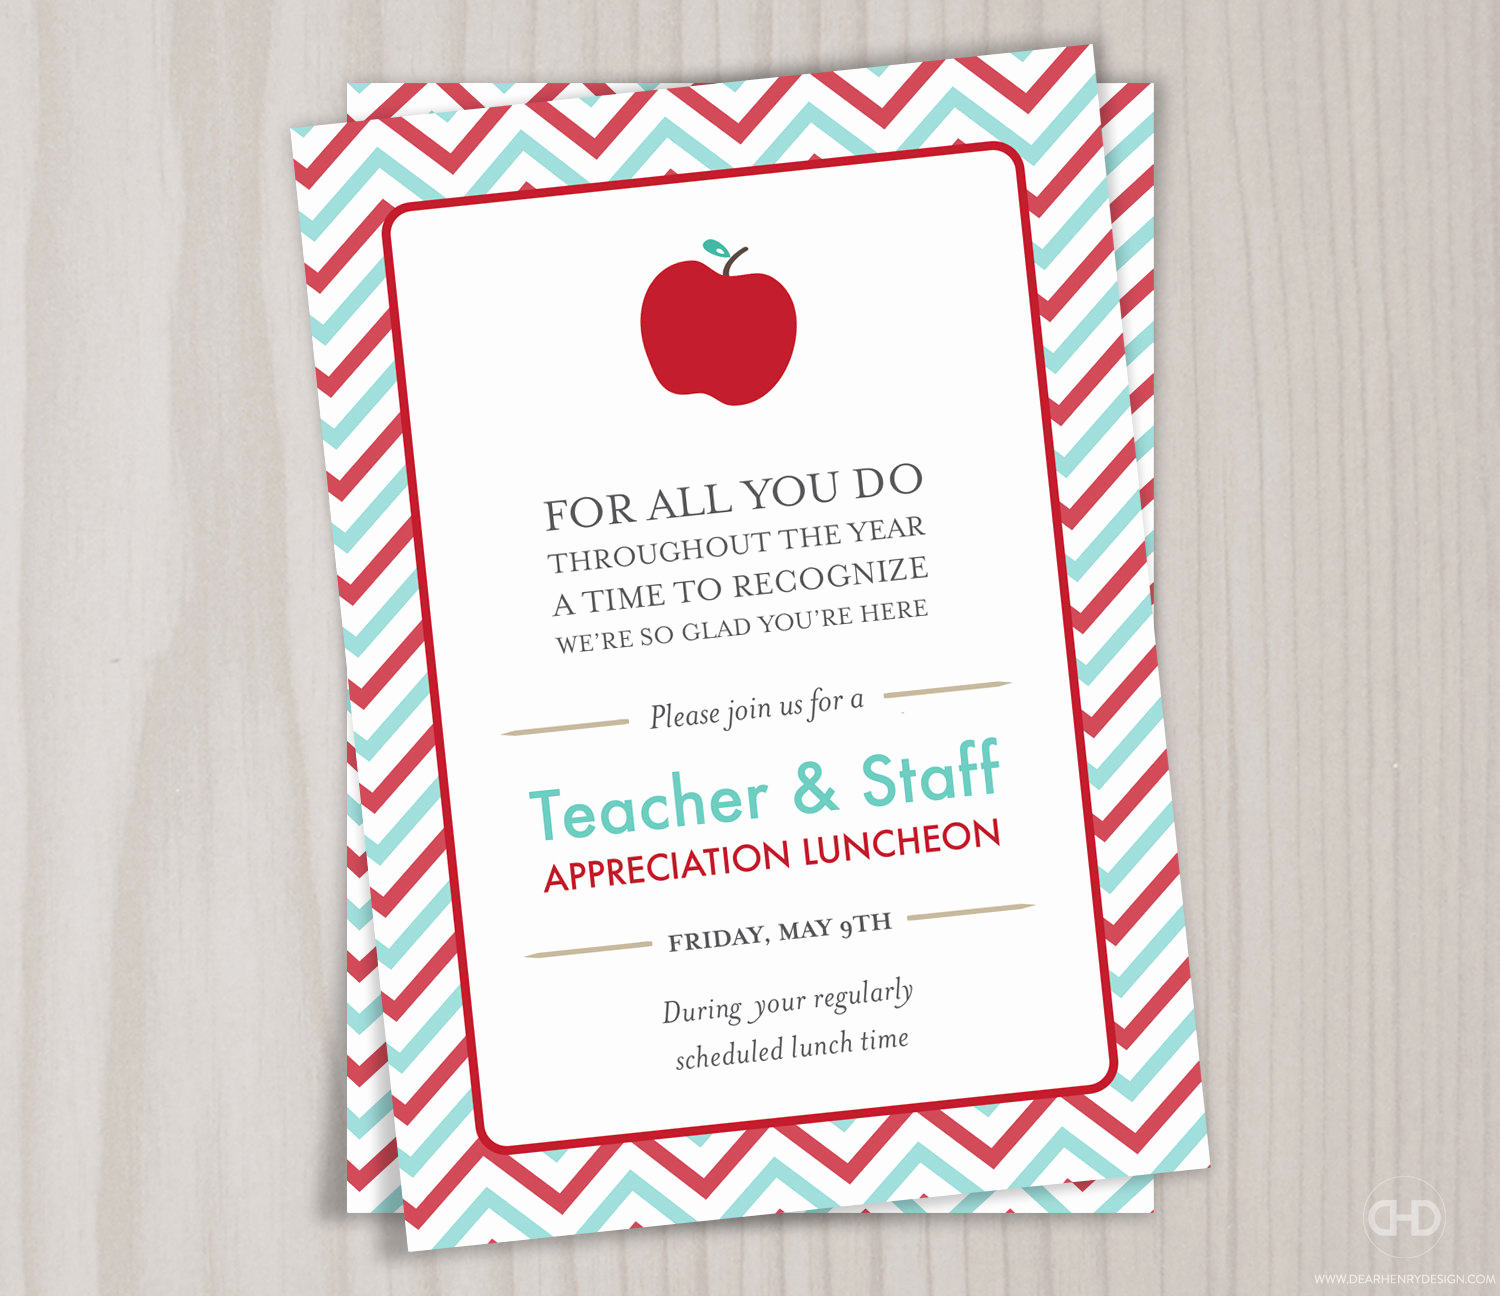 Teacher Appreciation Luncheon Invitation Best Of Teacher Appreciation Invitation Printable Teacher Thank You